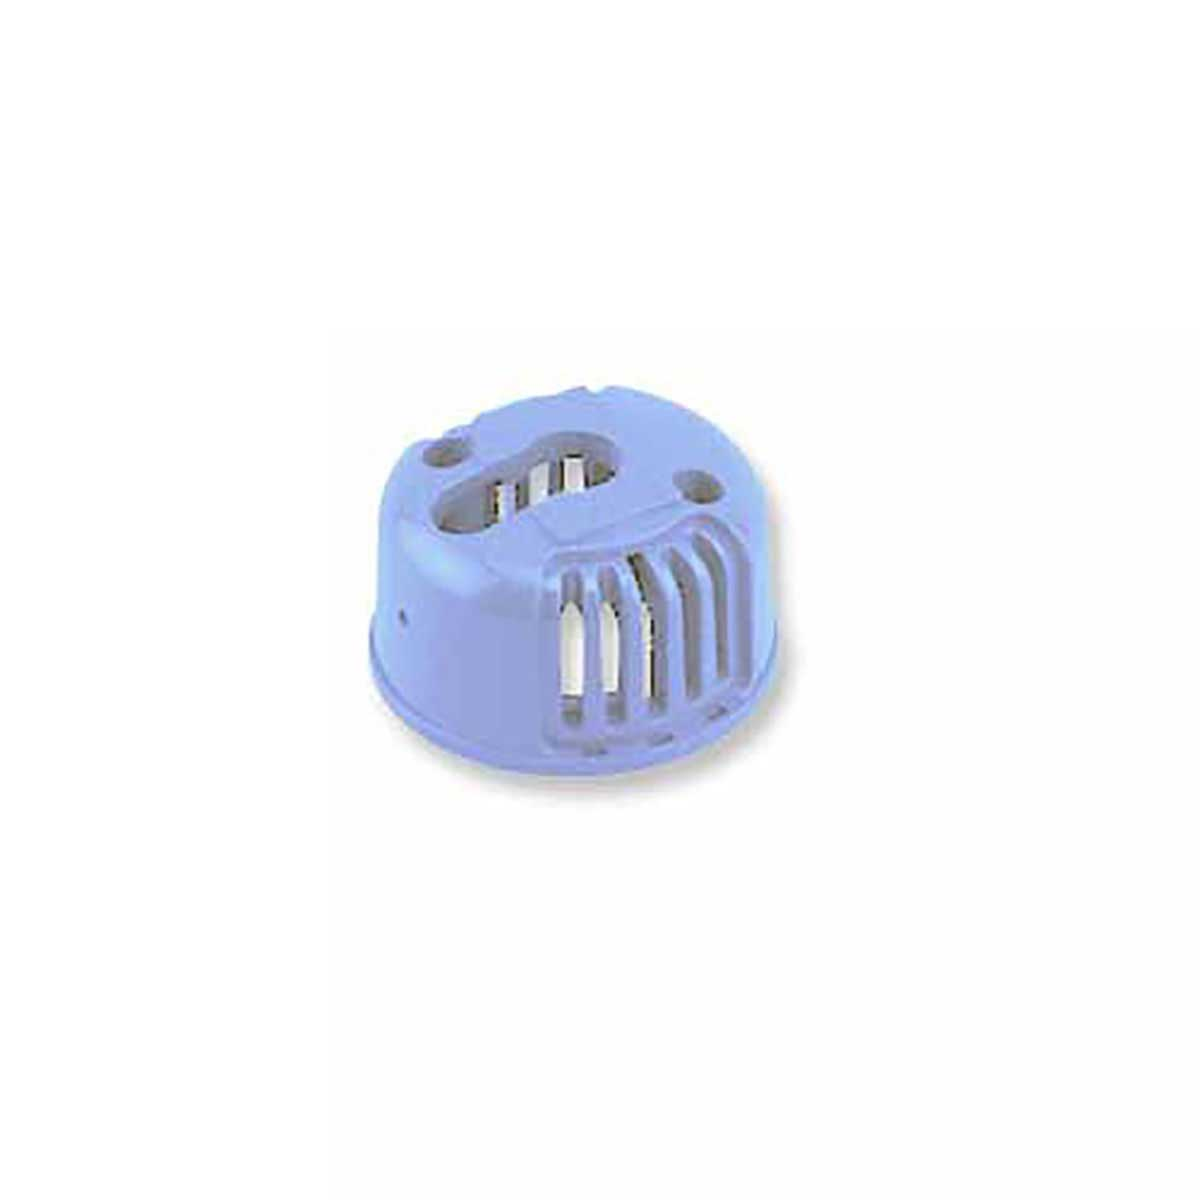 Light Blue Switch Cap for Oster Turbo 2 Speed Grooming Clippers